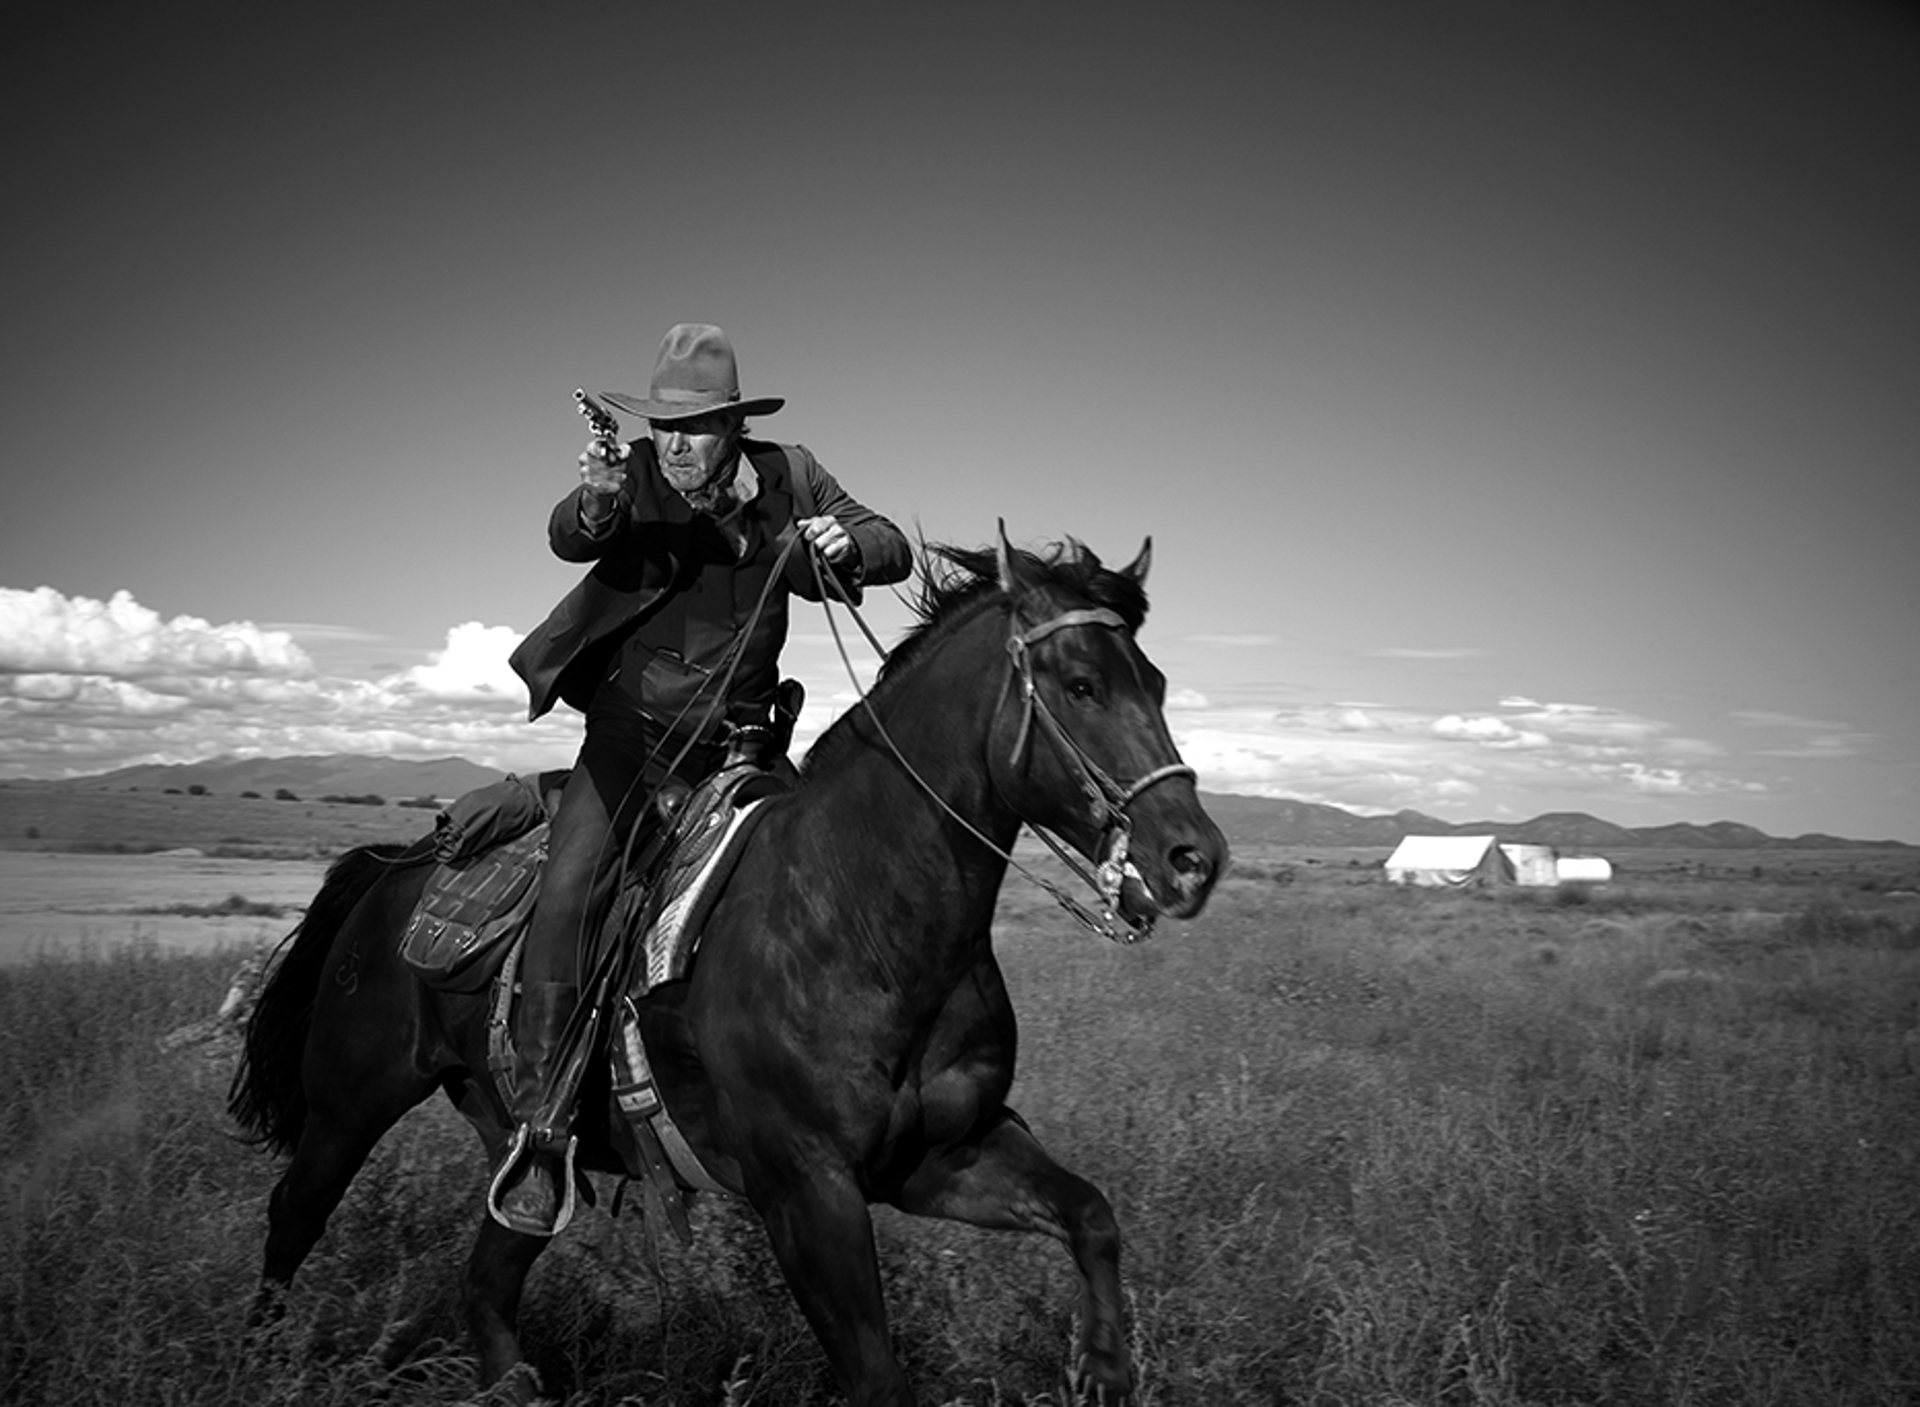 10018 Harrison Ford Riding the Horse BW by Timothy White